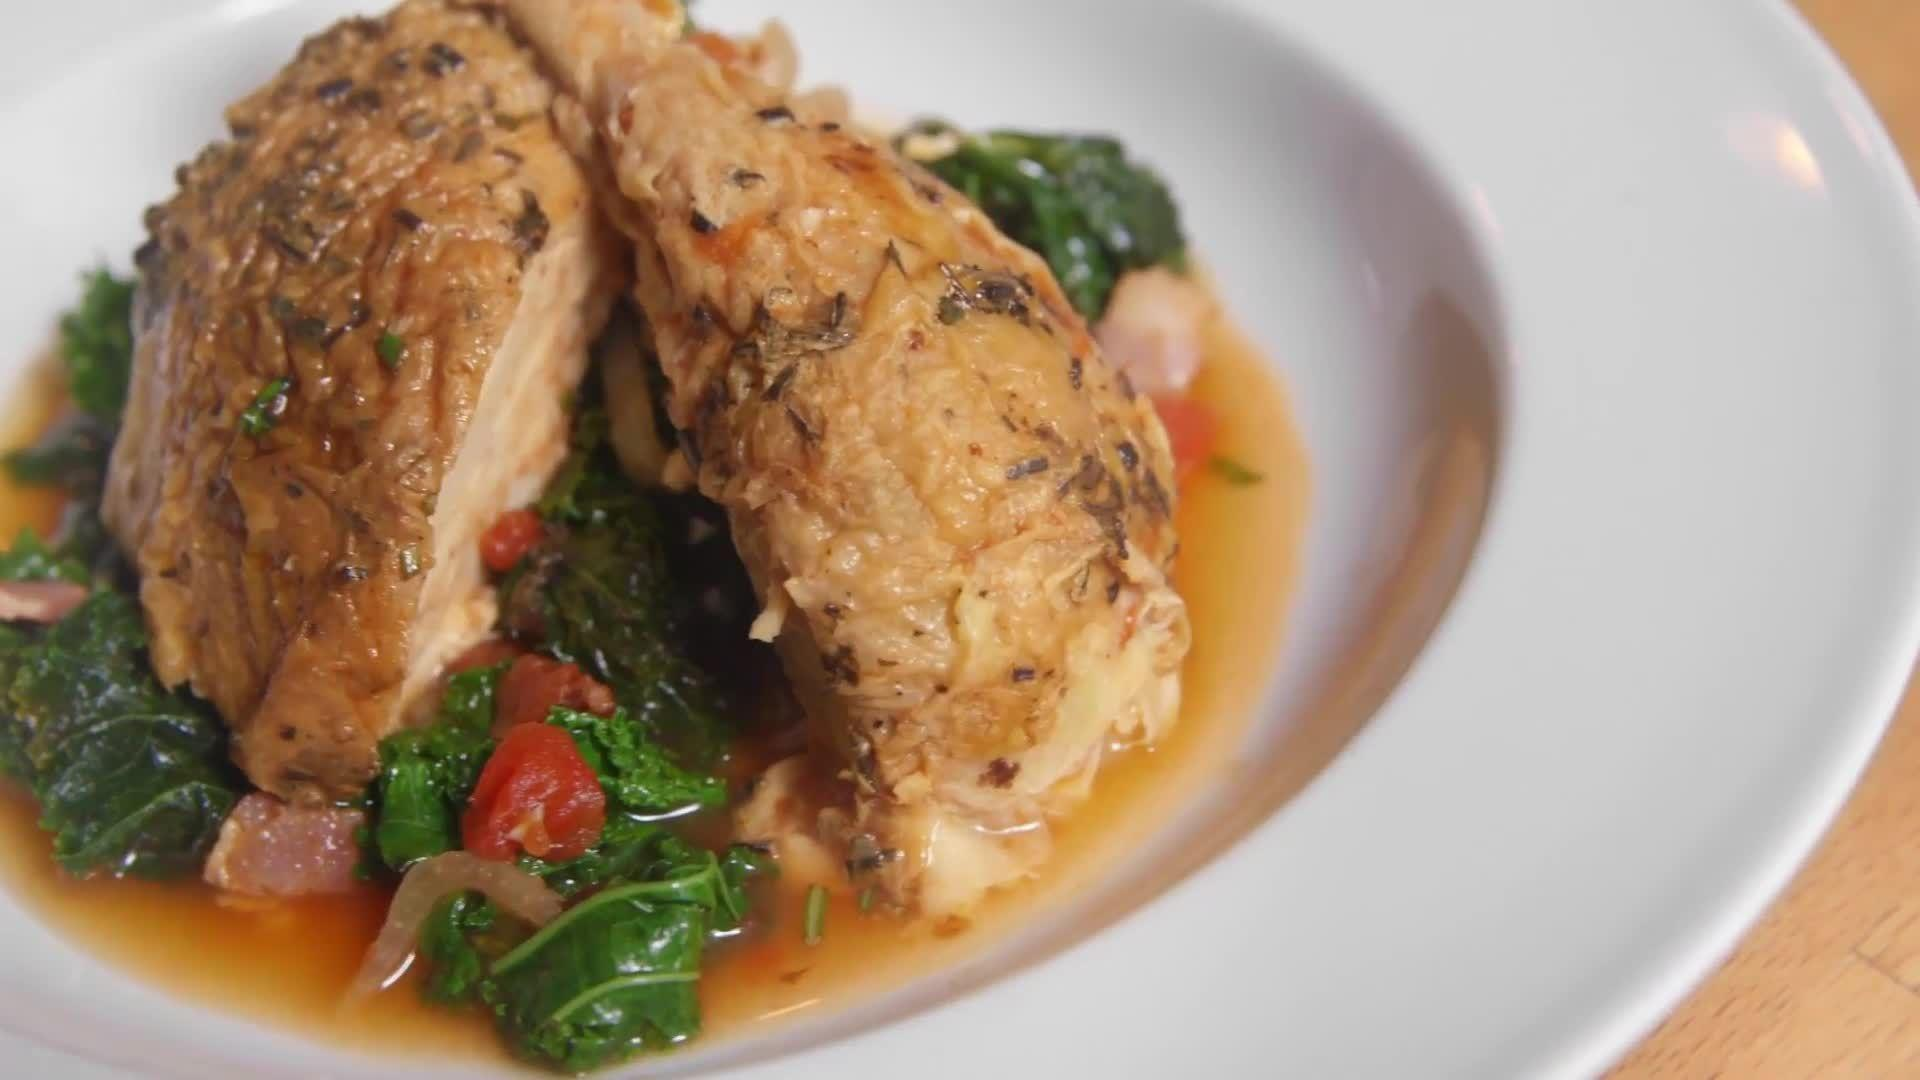 How to Make the Perfect Braised Chicken Dinner